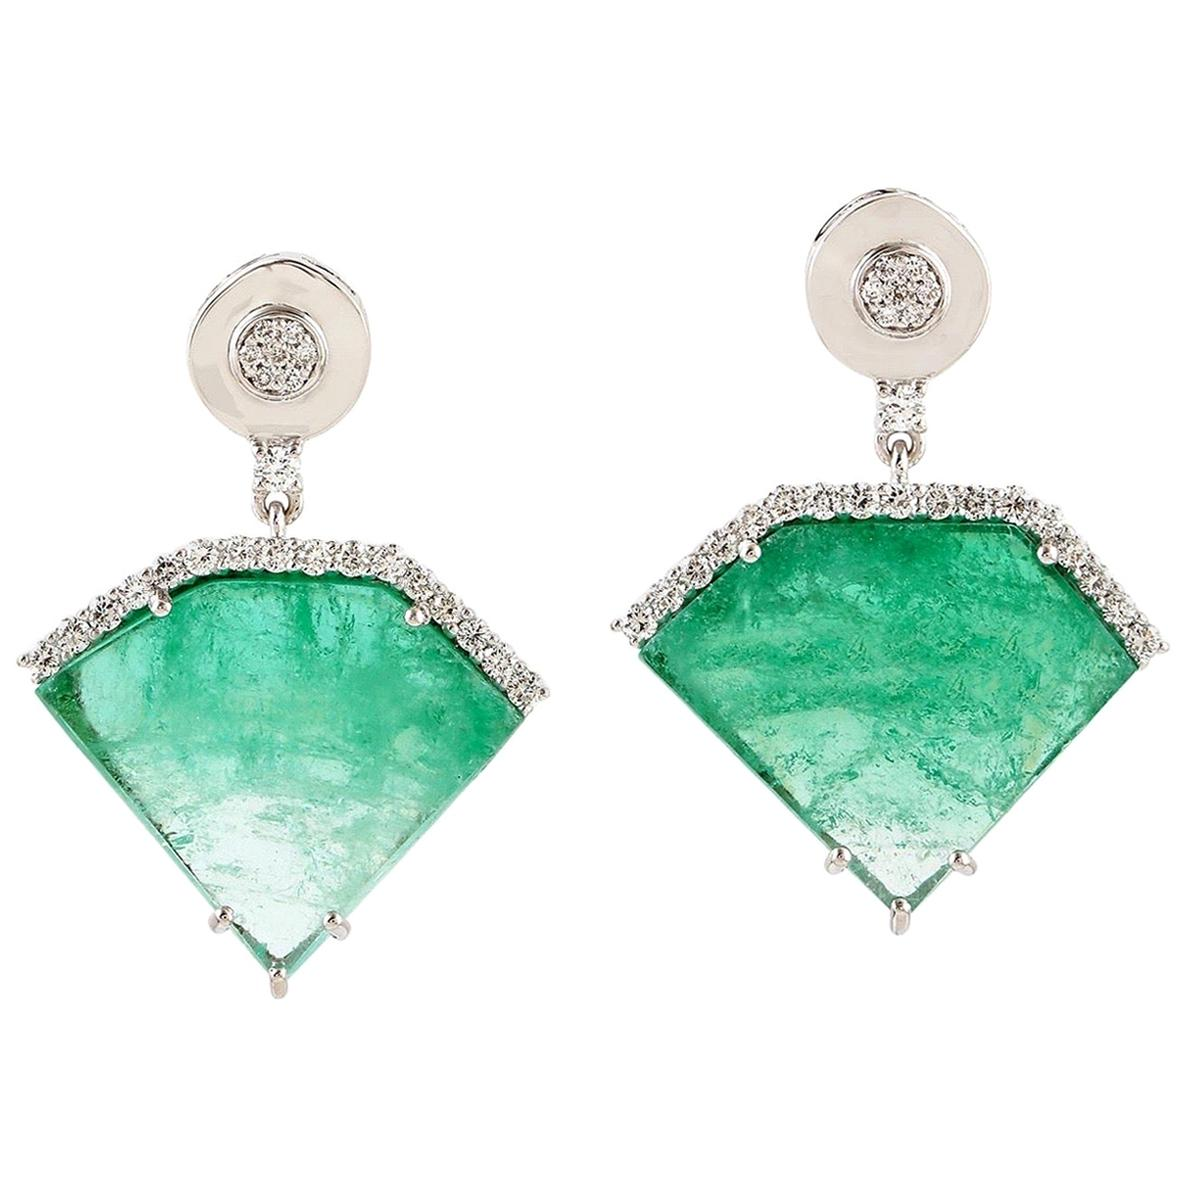 20.2 Carat Emerald Diamond 18 Karat White Gold Earrings